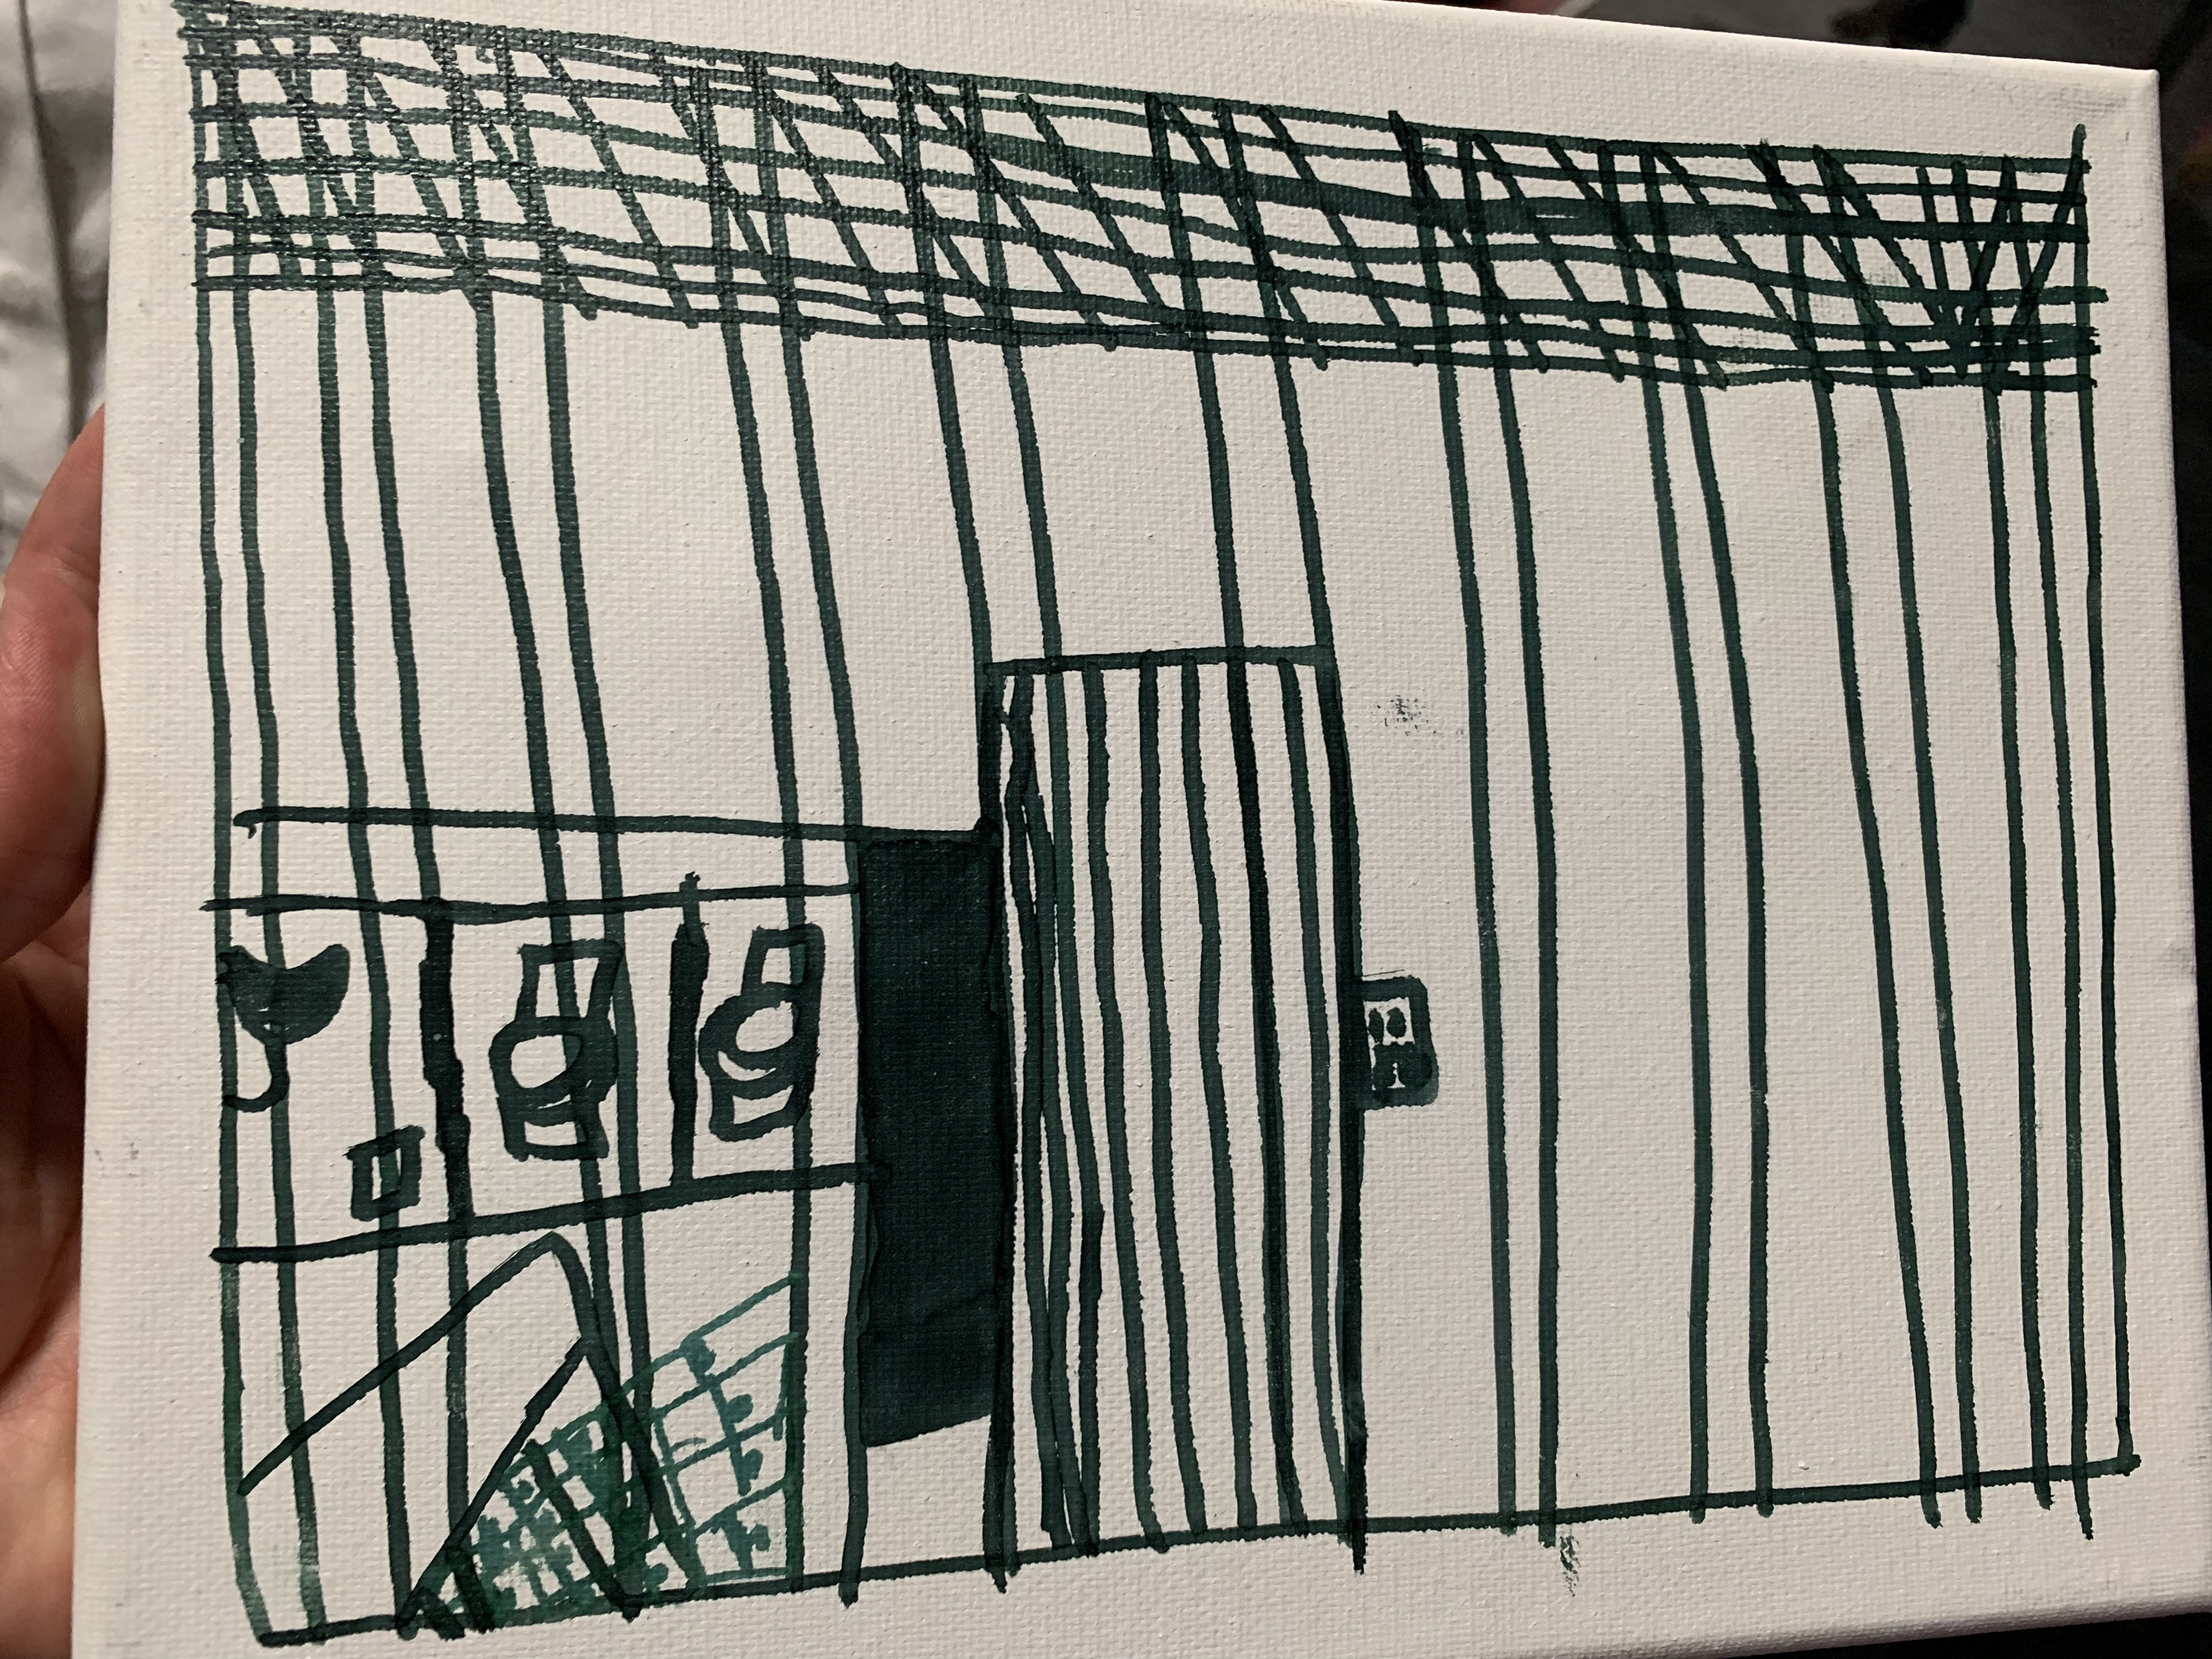 The AAP released drawings by migrant children depicting the conditions inside Border Patrol detention facilities.